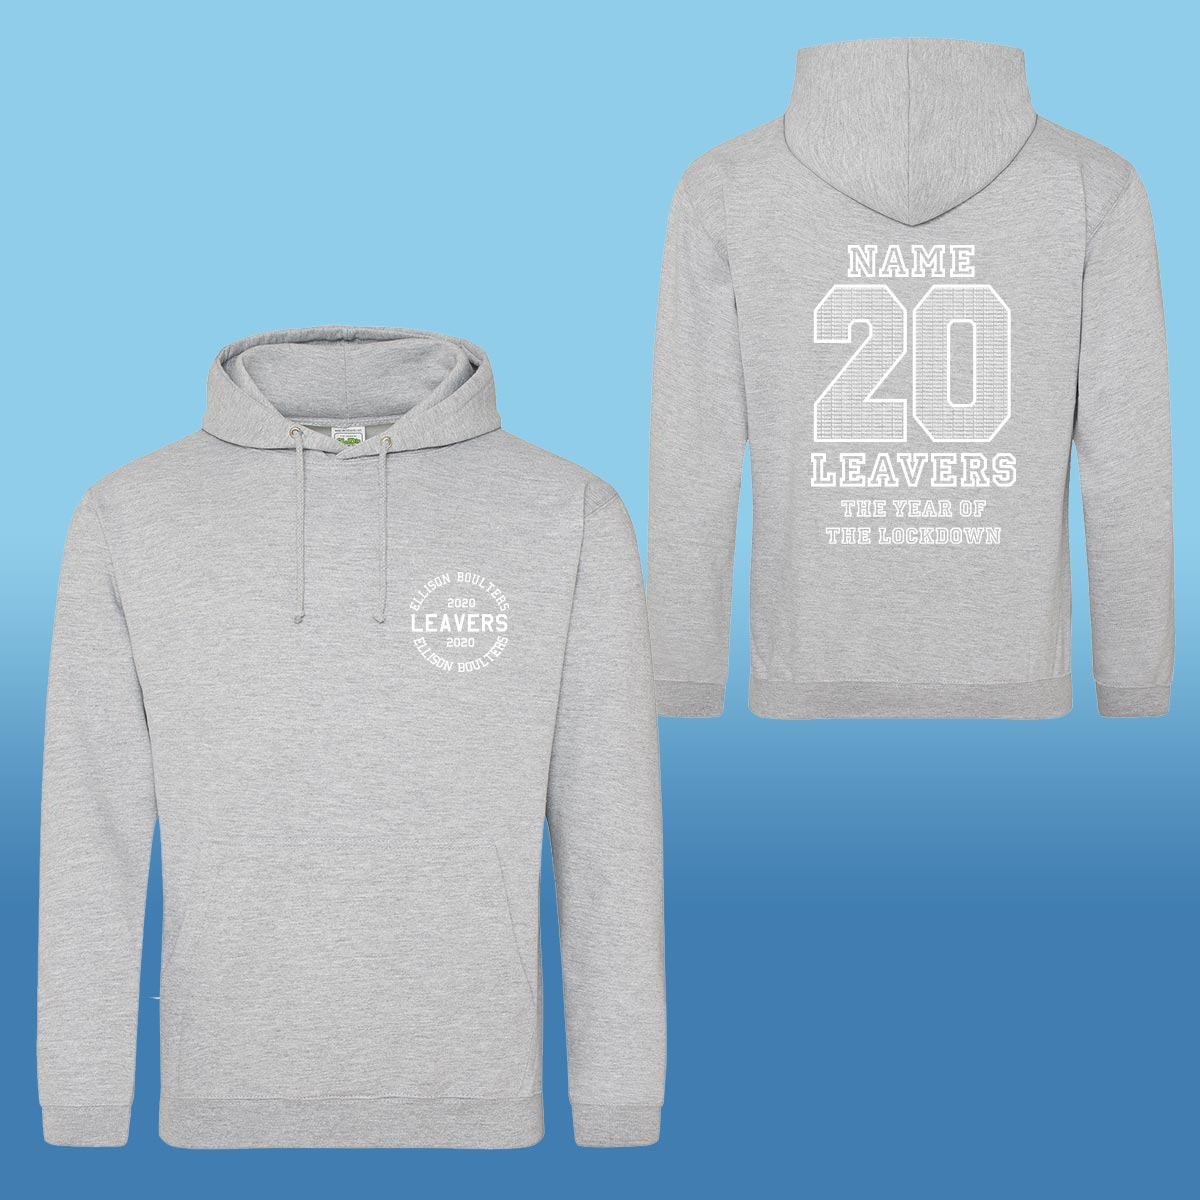 Ellison Boulters Leavers Hoodies